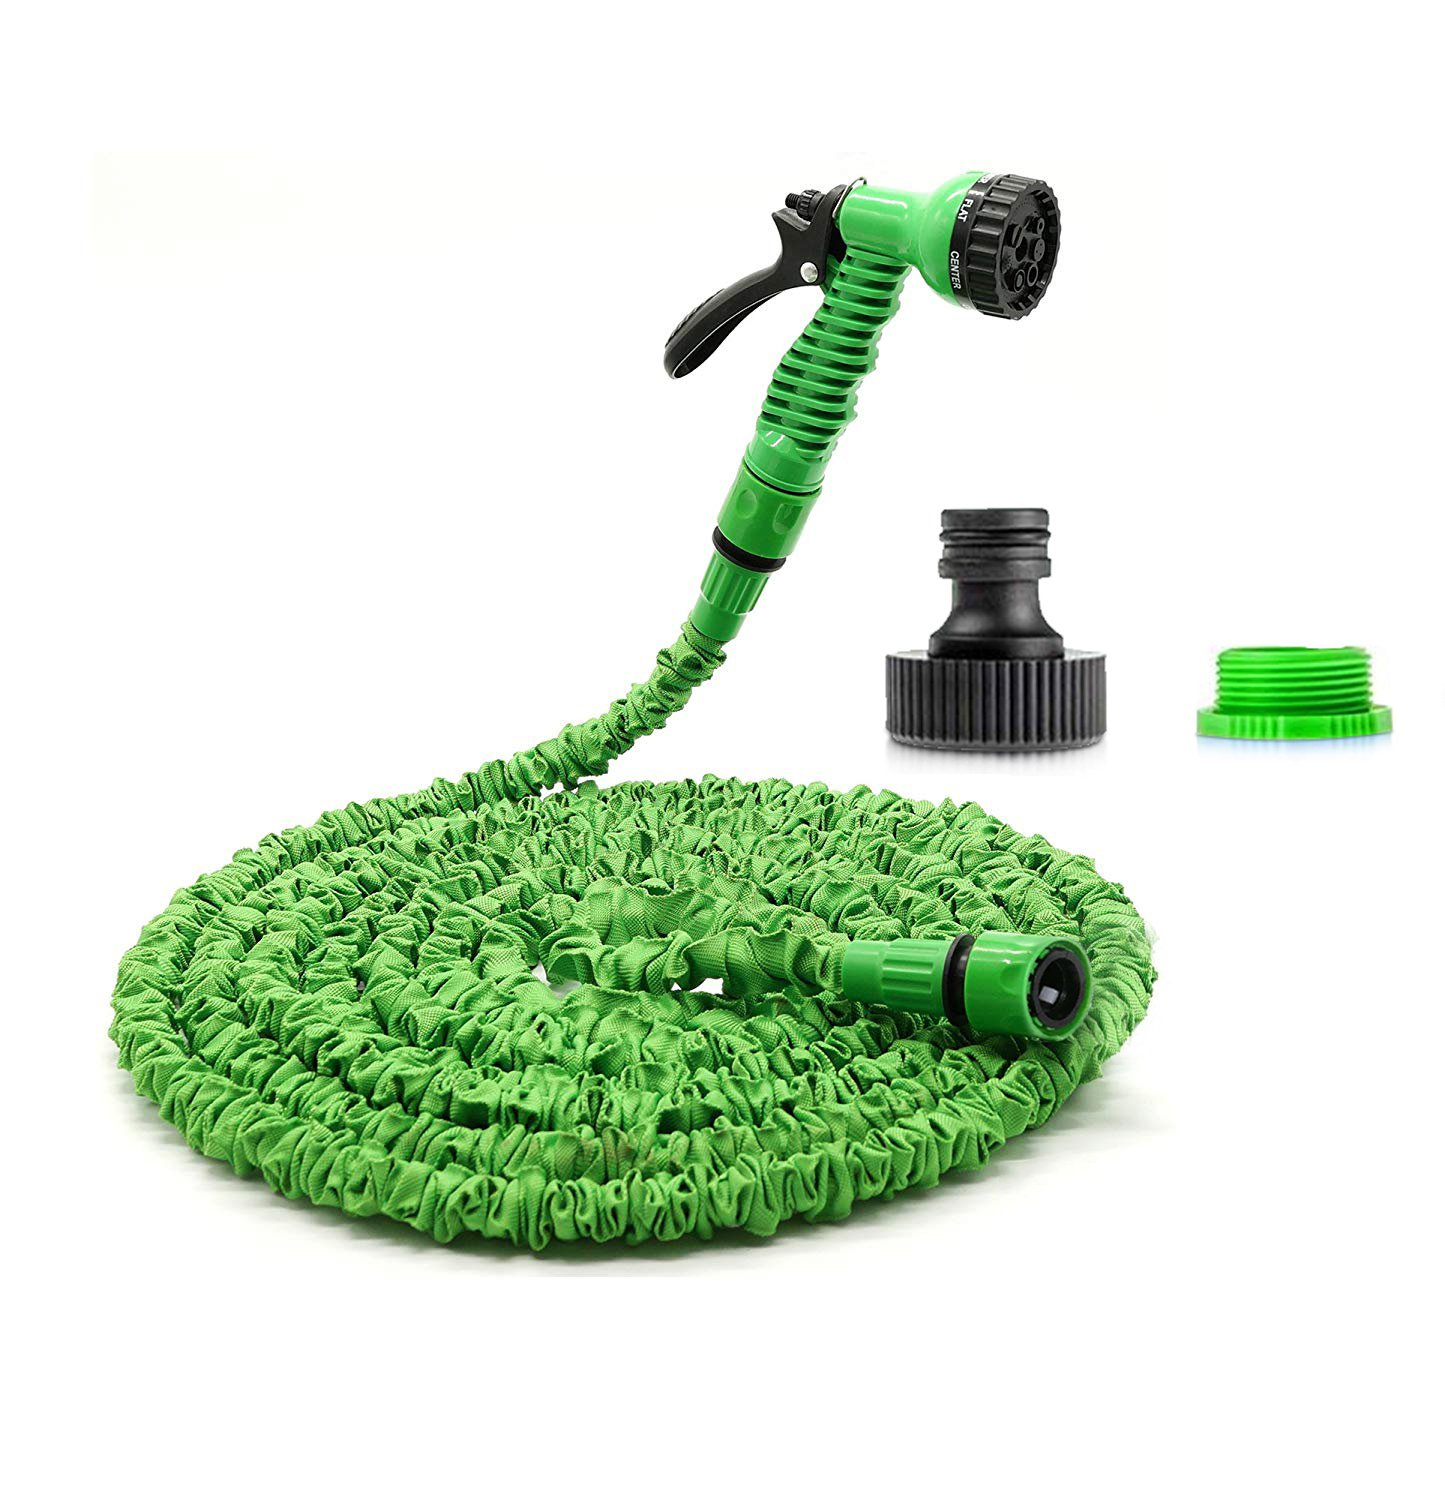 ENCEEN Expandable 50FT Garden Hose Pipe Flexbile Water Pipe with 7-pattern Spray Gun for Watering Garden Cars Pets Plants